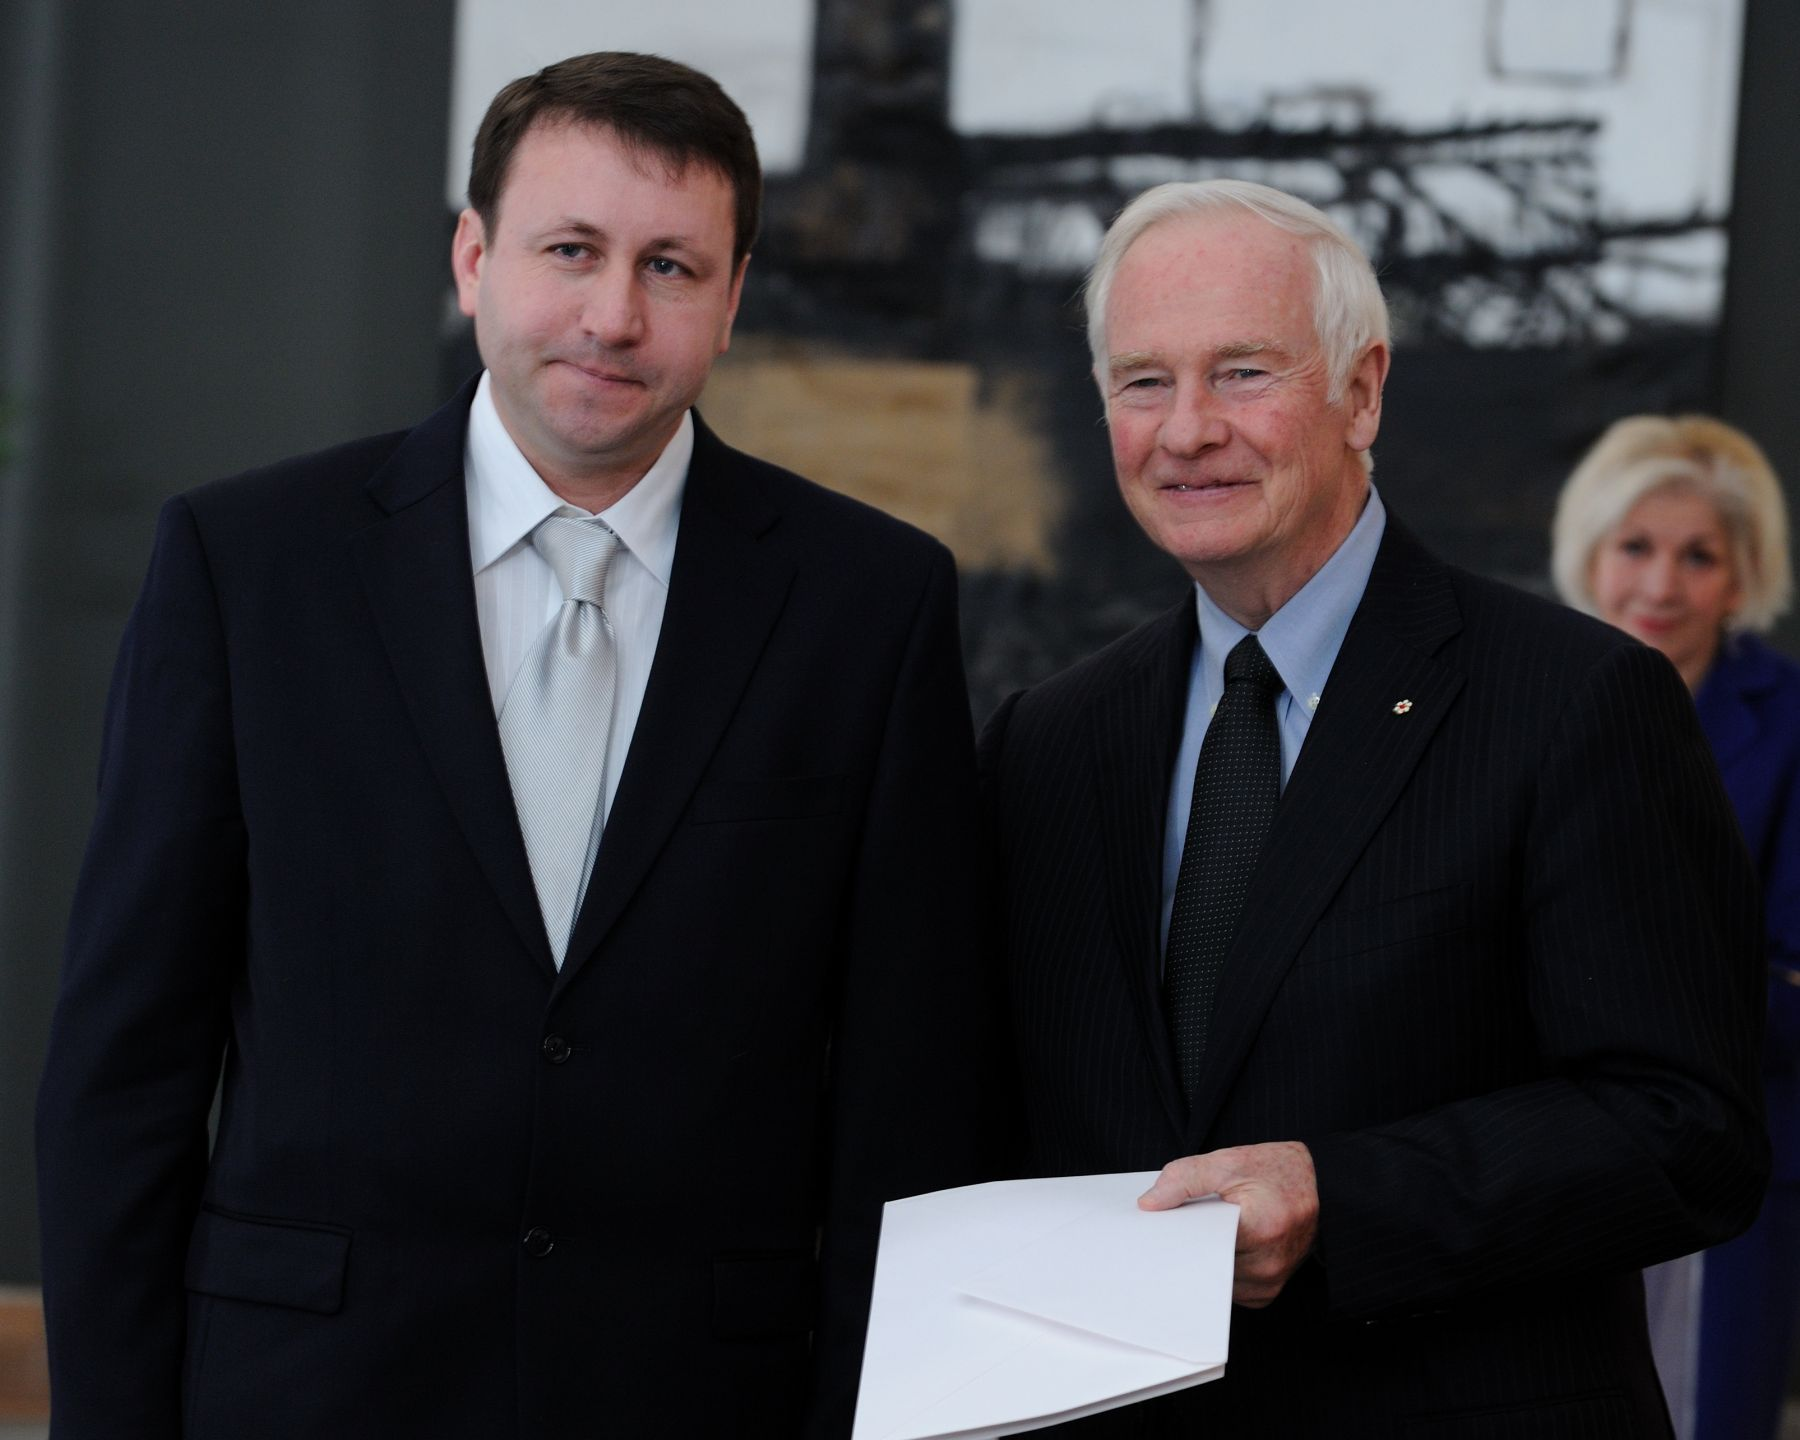 The Governor General received the credentials of His Excellency Igor Munteanu, ambassador of the Republic of Moldova.